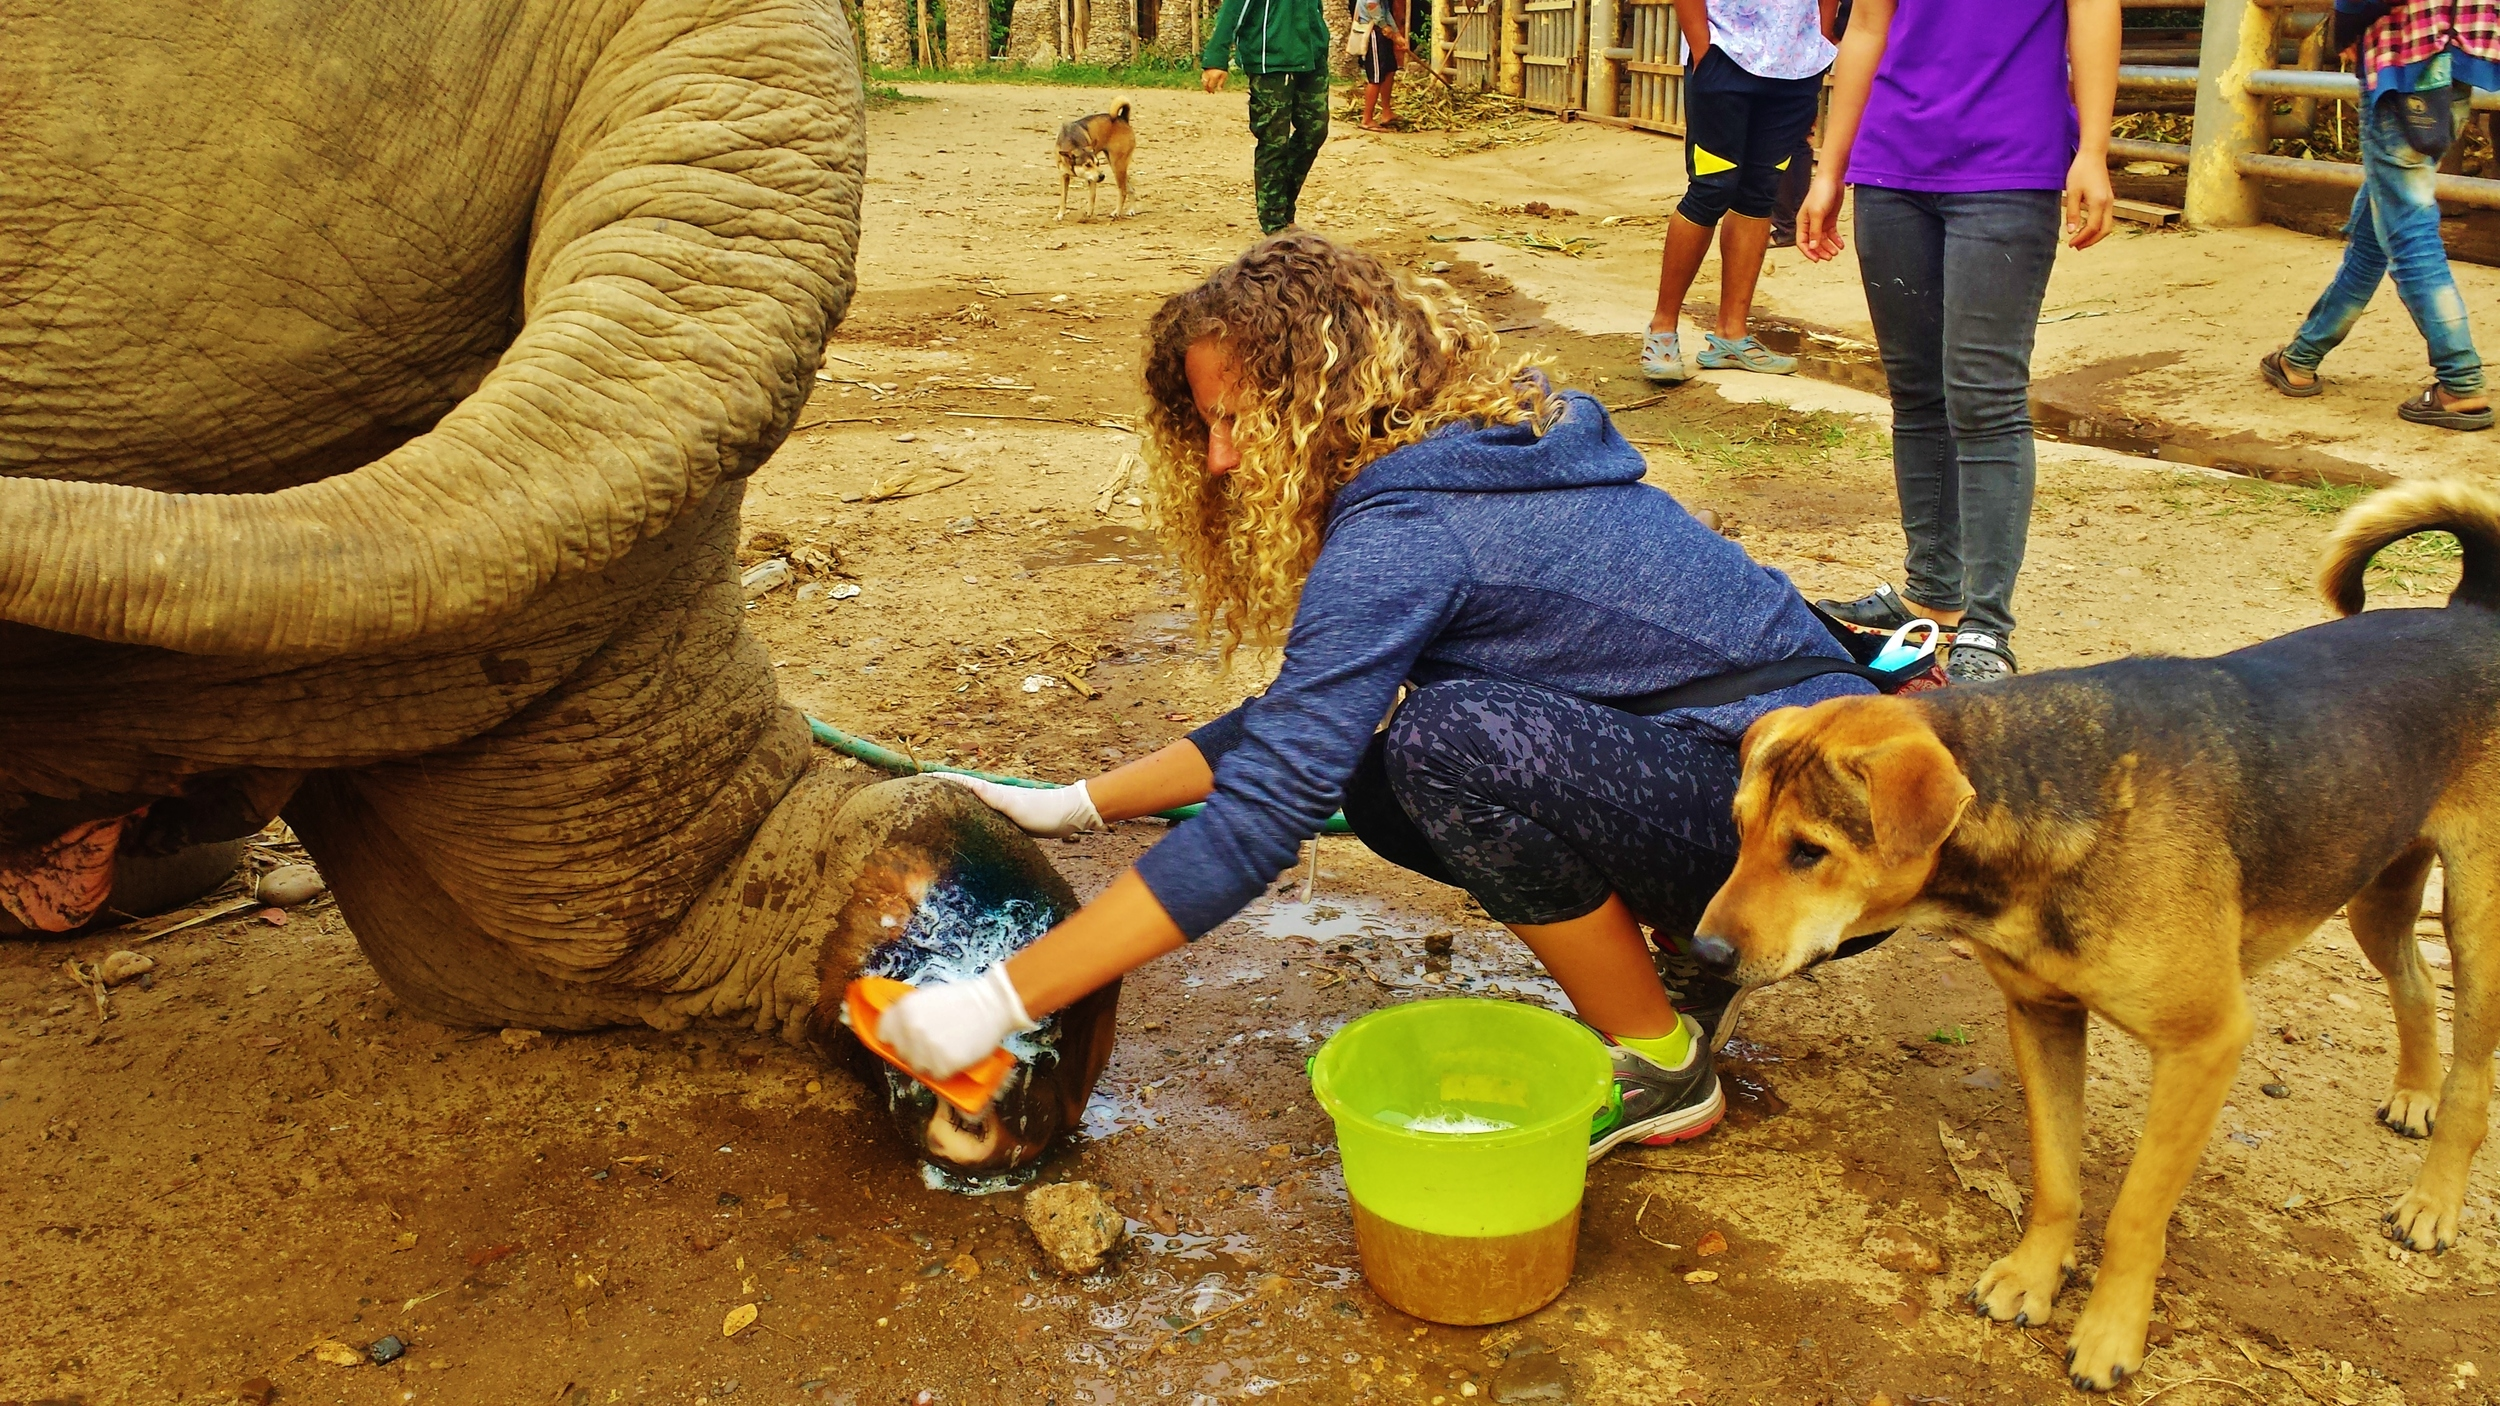 Tending to a landmine wound on an elephant rescued from the illegal logging industry.